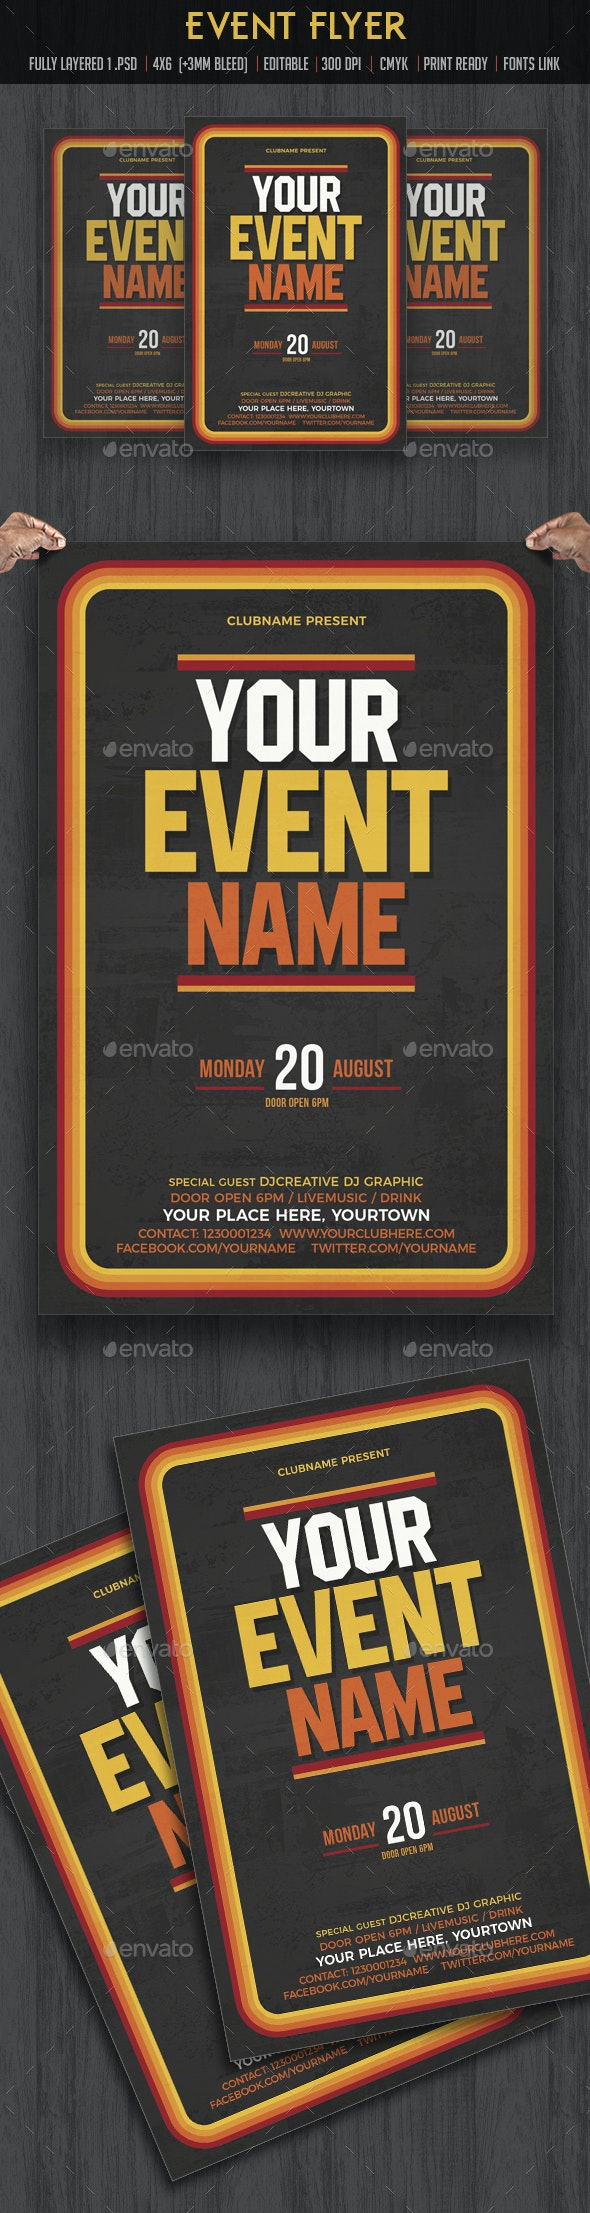 Event Flyer Template - Events Flyers